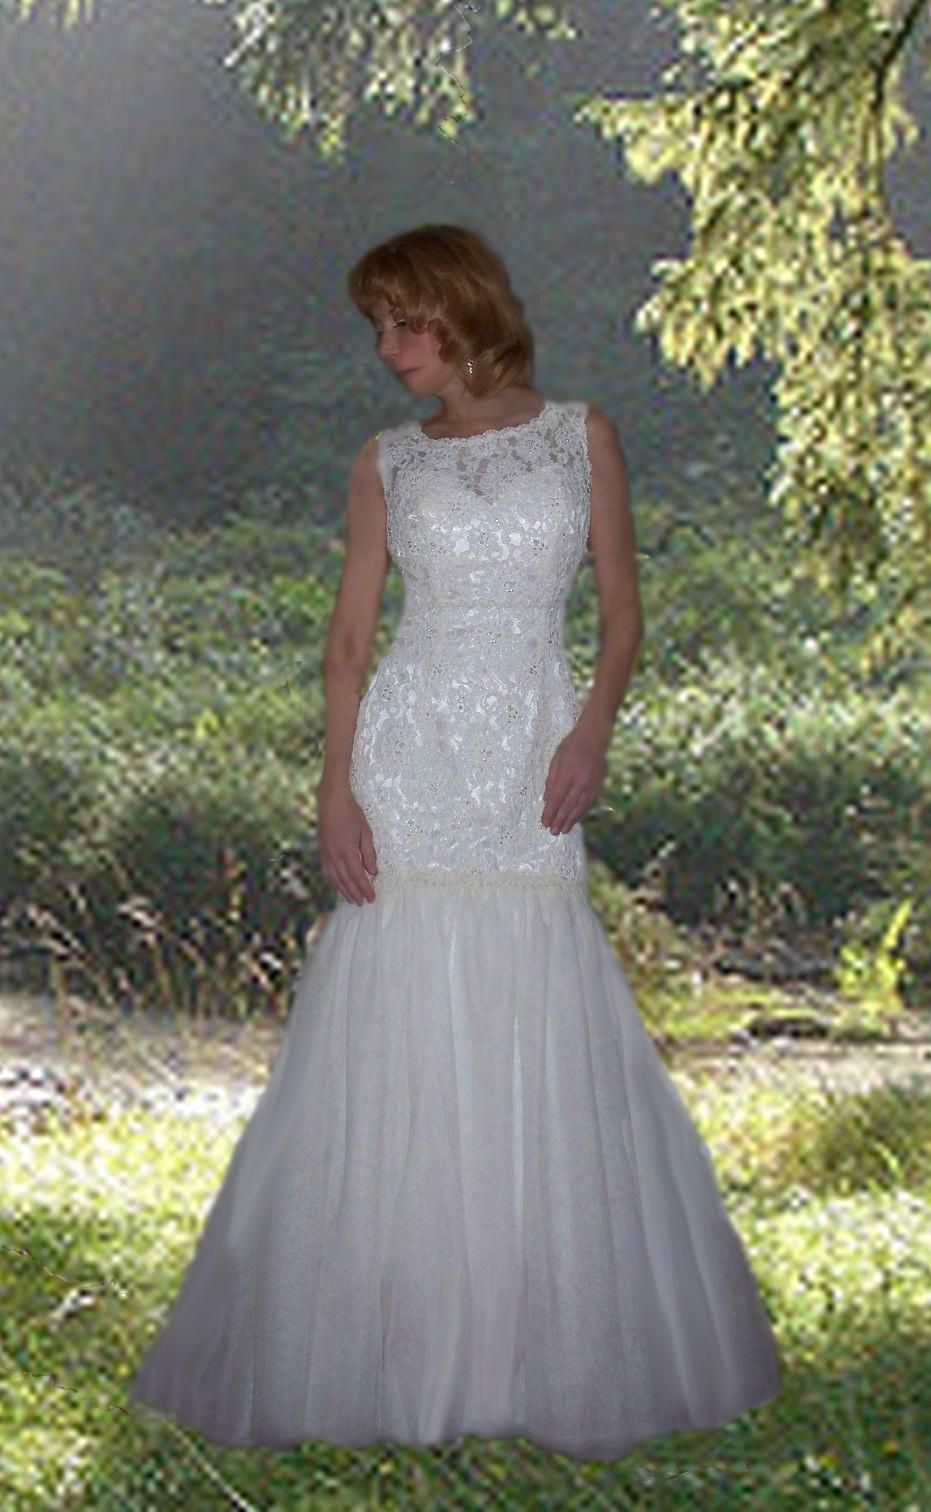 Recycled wedding dresses   Wedding Dress  Maggie sottero Wedding dress and Maggie